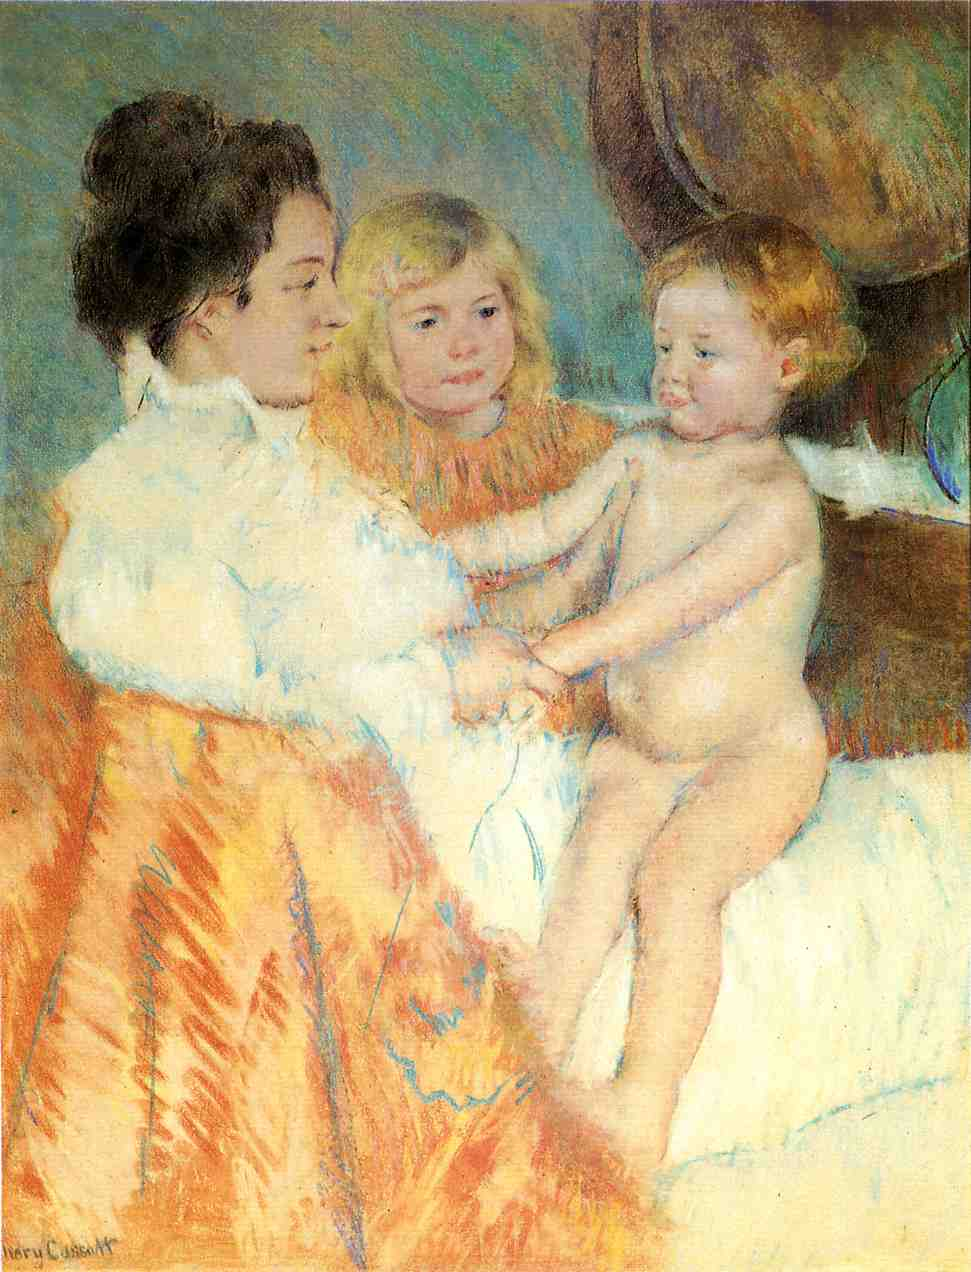 https://i0.wp.com/uploads0.wikipaintings.org/images/mary-cassatt/mother-sara-and-the-baby-1.jpg